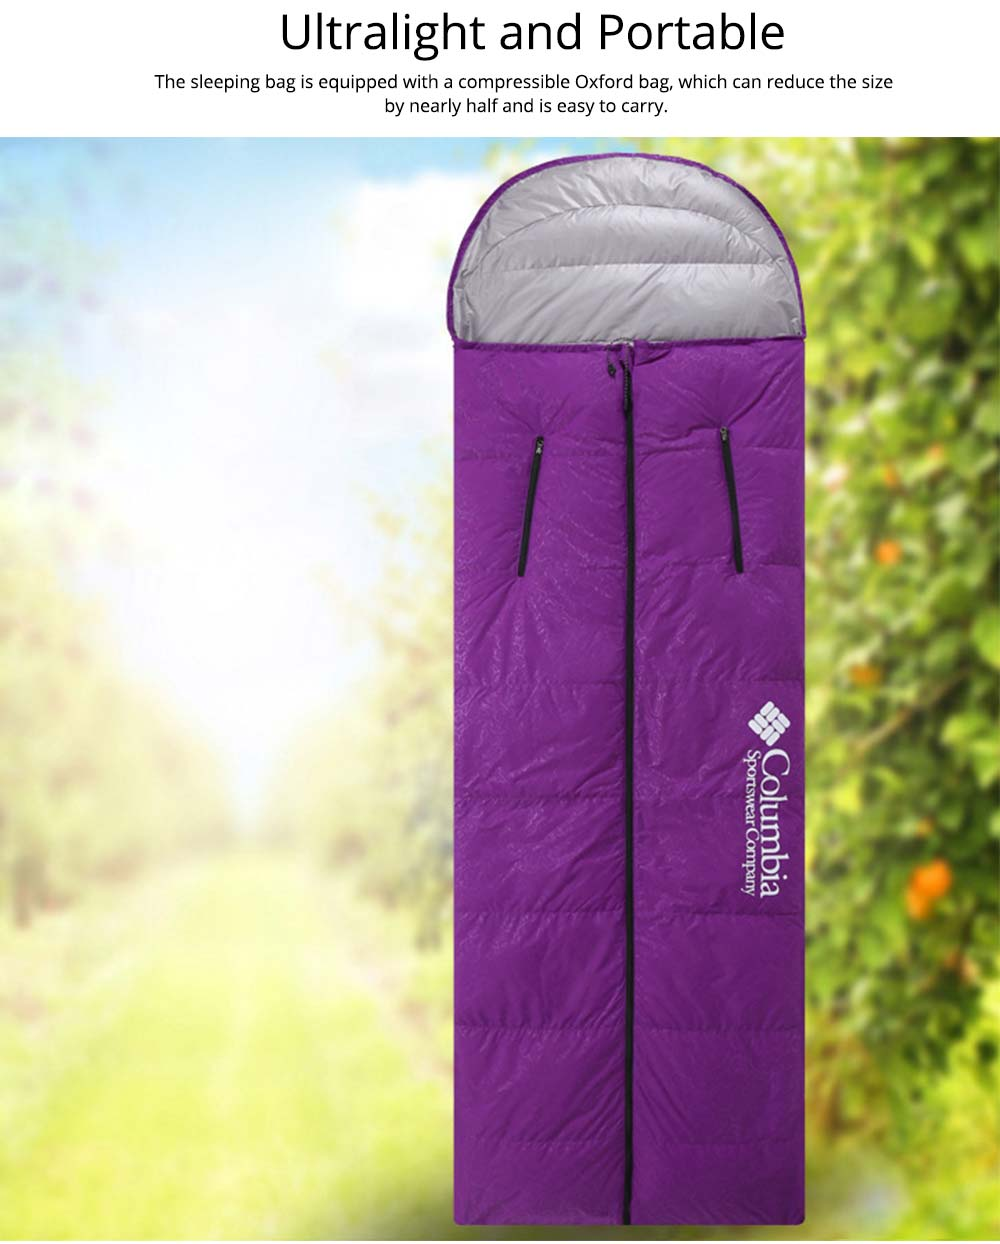 White Duck Down Outdoor Sleeping Bag Ultralight Portable Envelope Stretch Hand Warm Sleeping Bag for Adult Camping Hiking 2